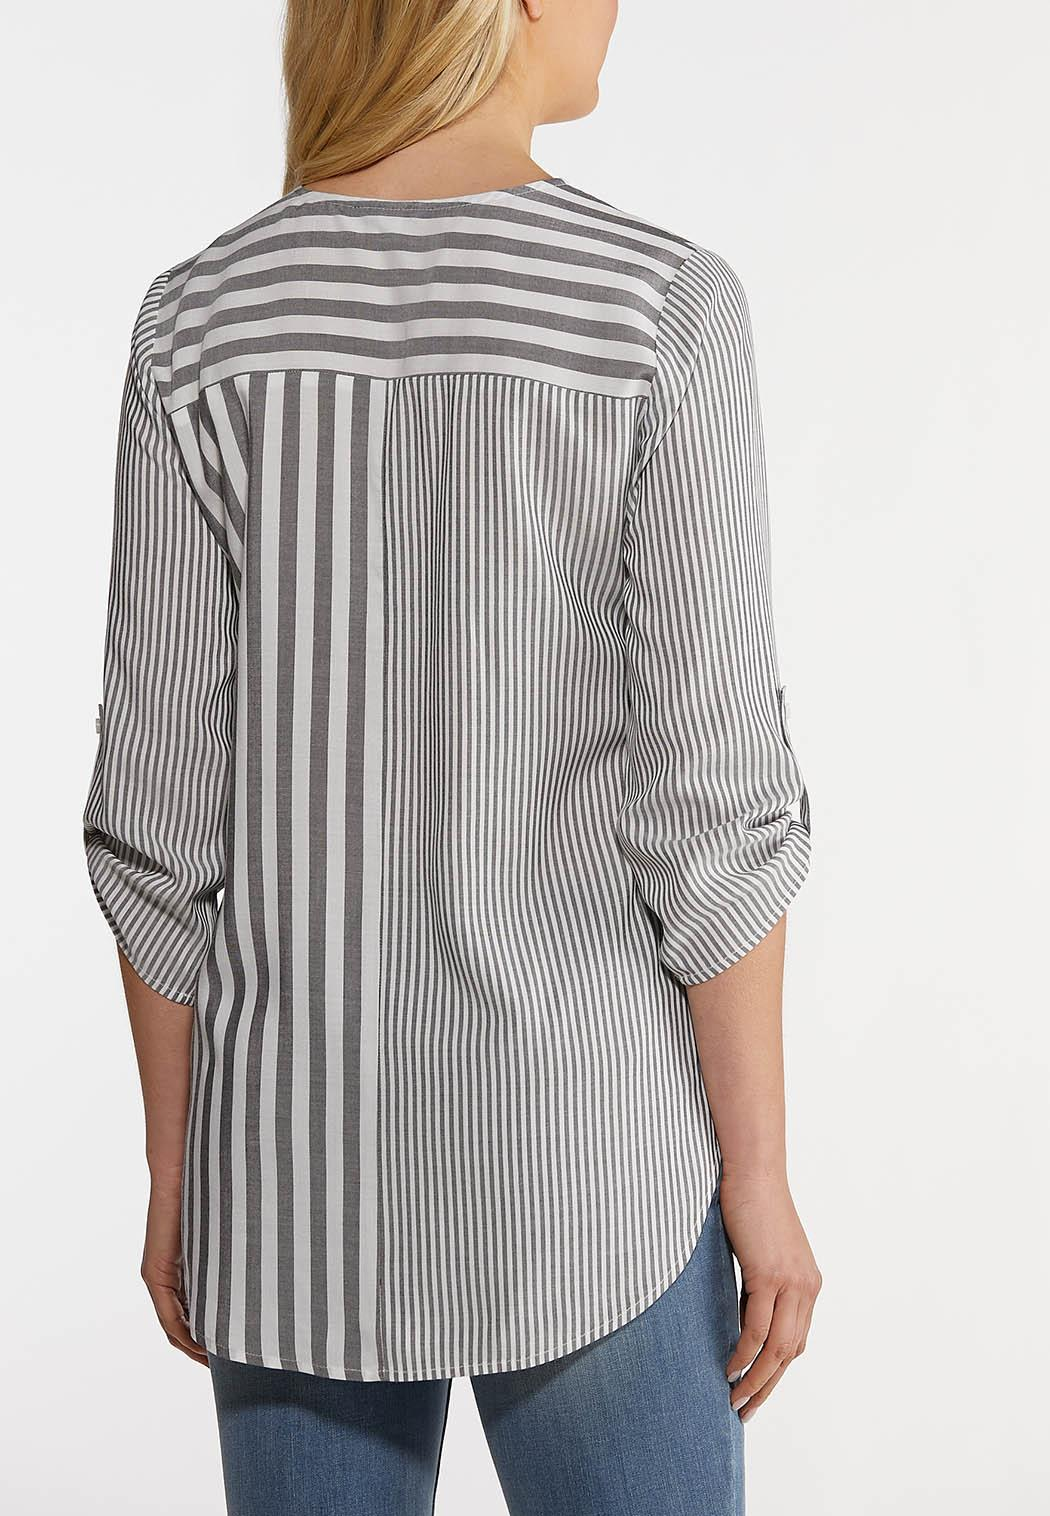 Knotted Gray Stripe Top (Item #44160091)